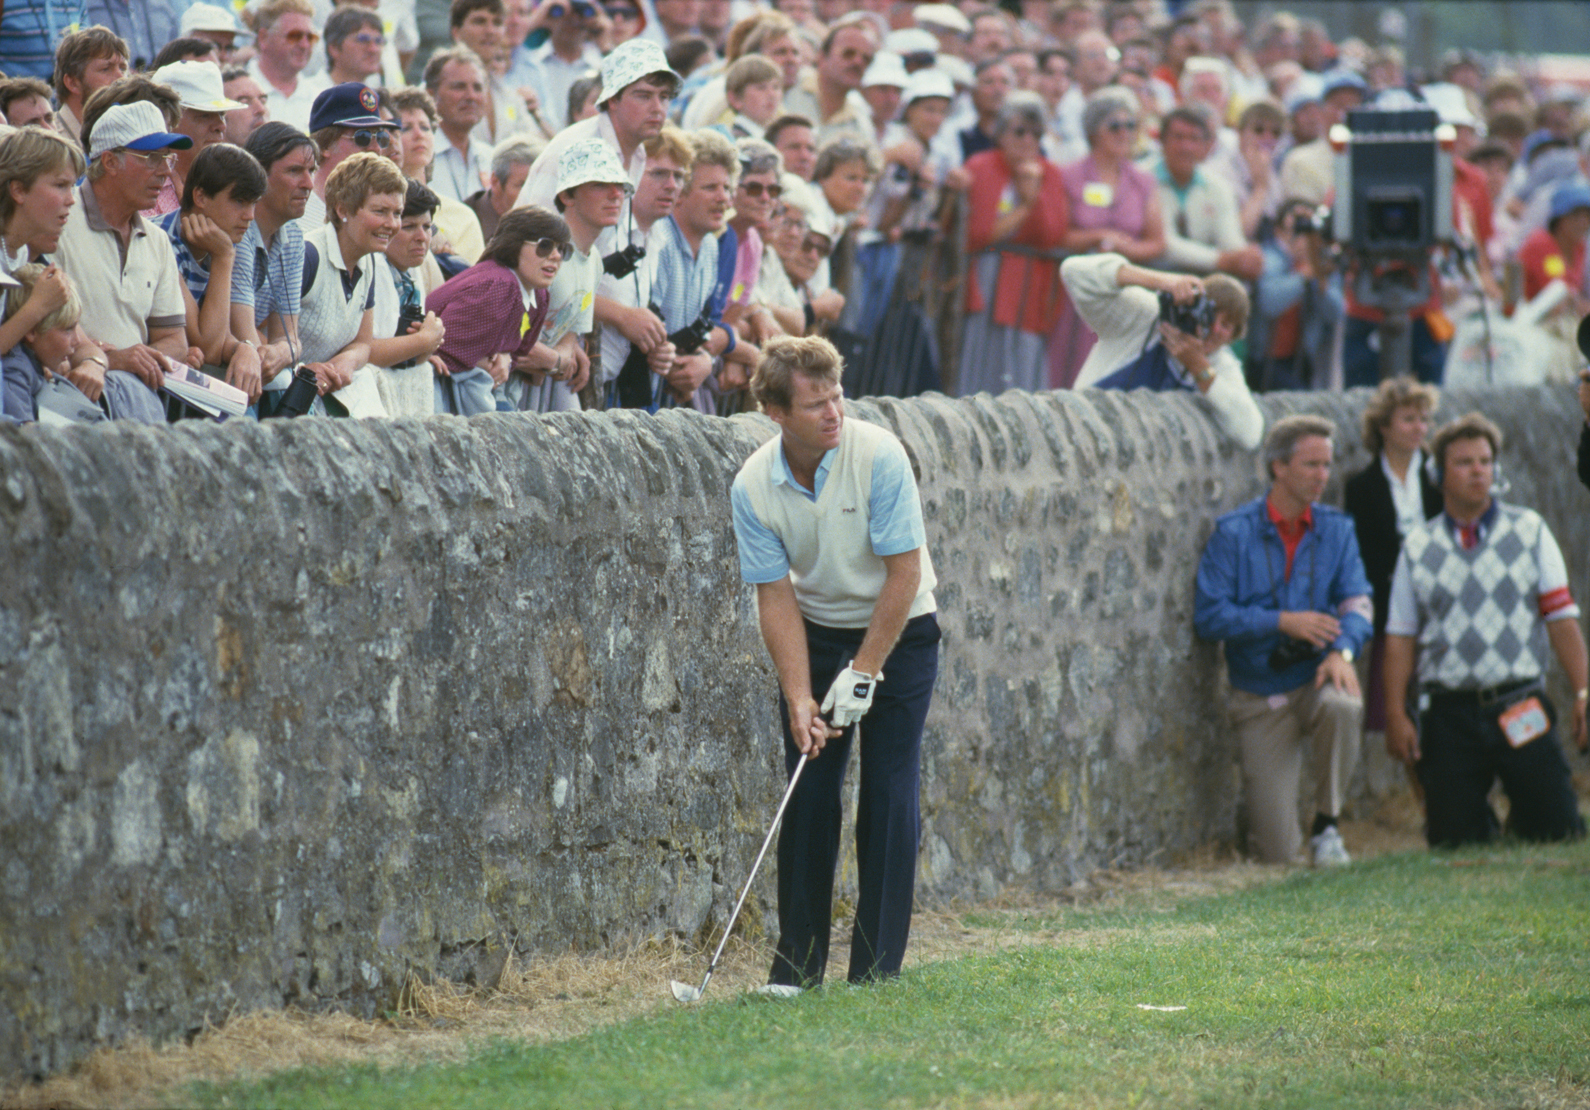 Tom Watson misses a sixth Open title by making bogey at 17.